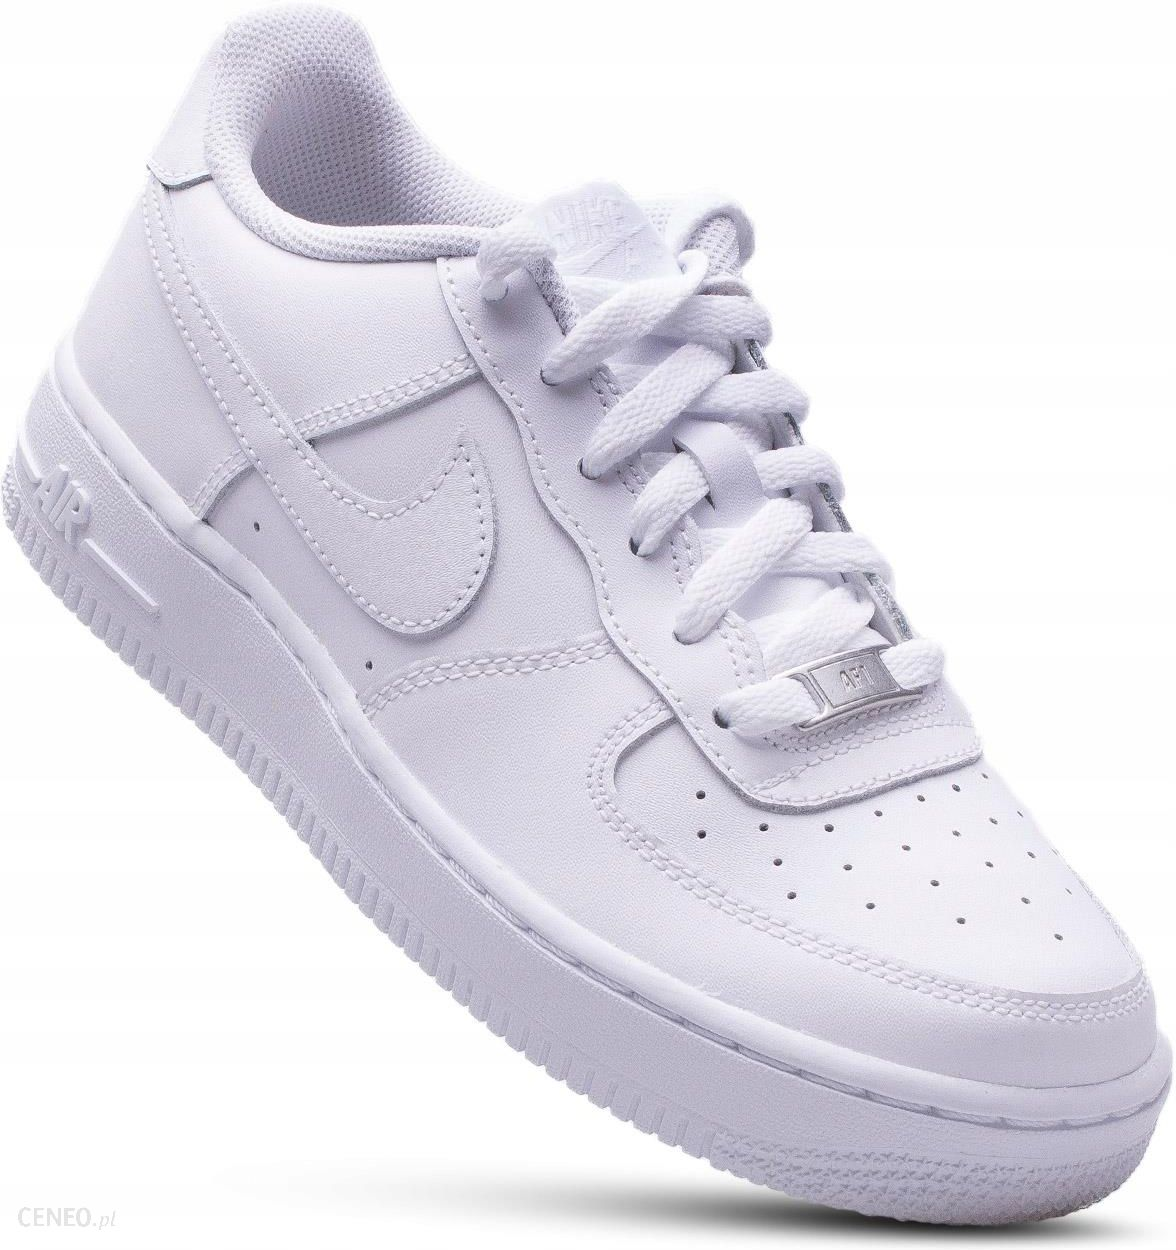 Buty damskie Nike Air Force 1 SP